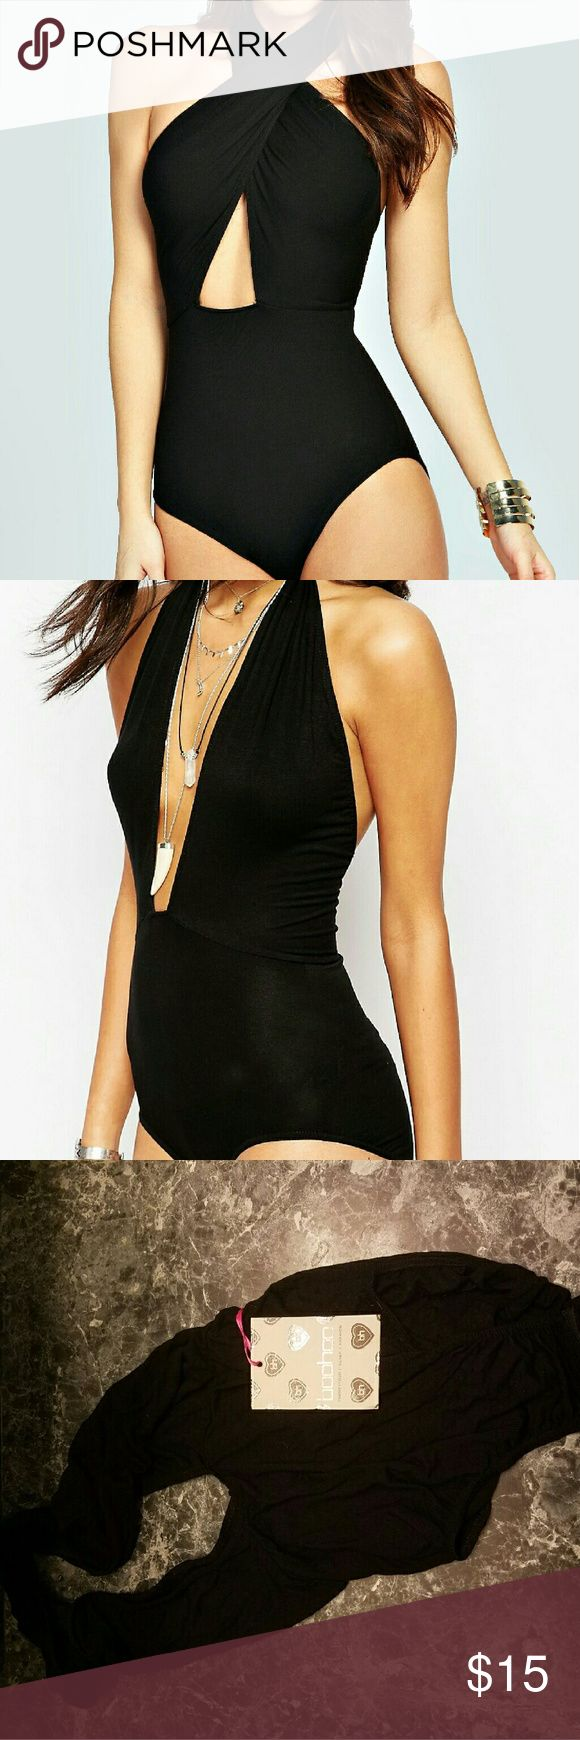 "NWT BOOHOO Sophie Wrap Front Halter Neck Bodysuit NWT  BOOHOO Size 10 or M/L  36-39"" Bust 29-31"" Waist 39-42"" Hips  Black 'Sophie Wrap Front Halter Neck Bodysuit'  95% Viscose 5% Elastane Snap crotch Can be worn 2 different ways! Boohoo Tops Tank Tops"